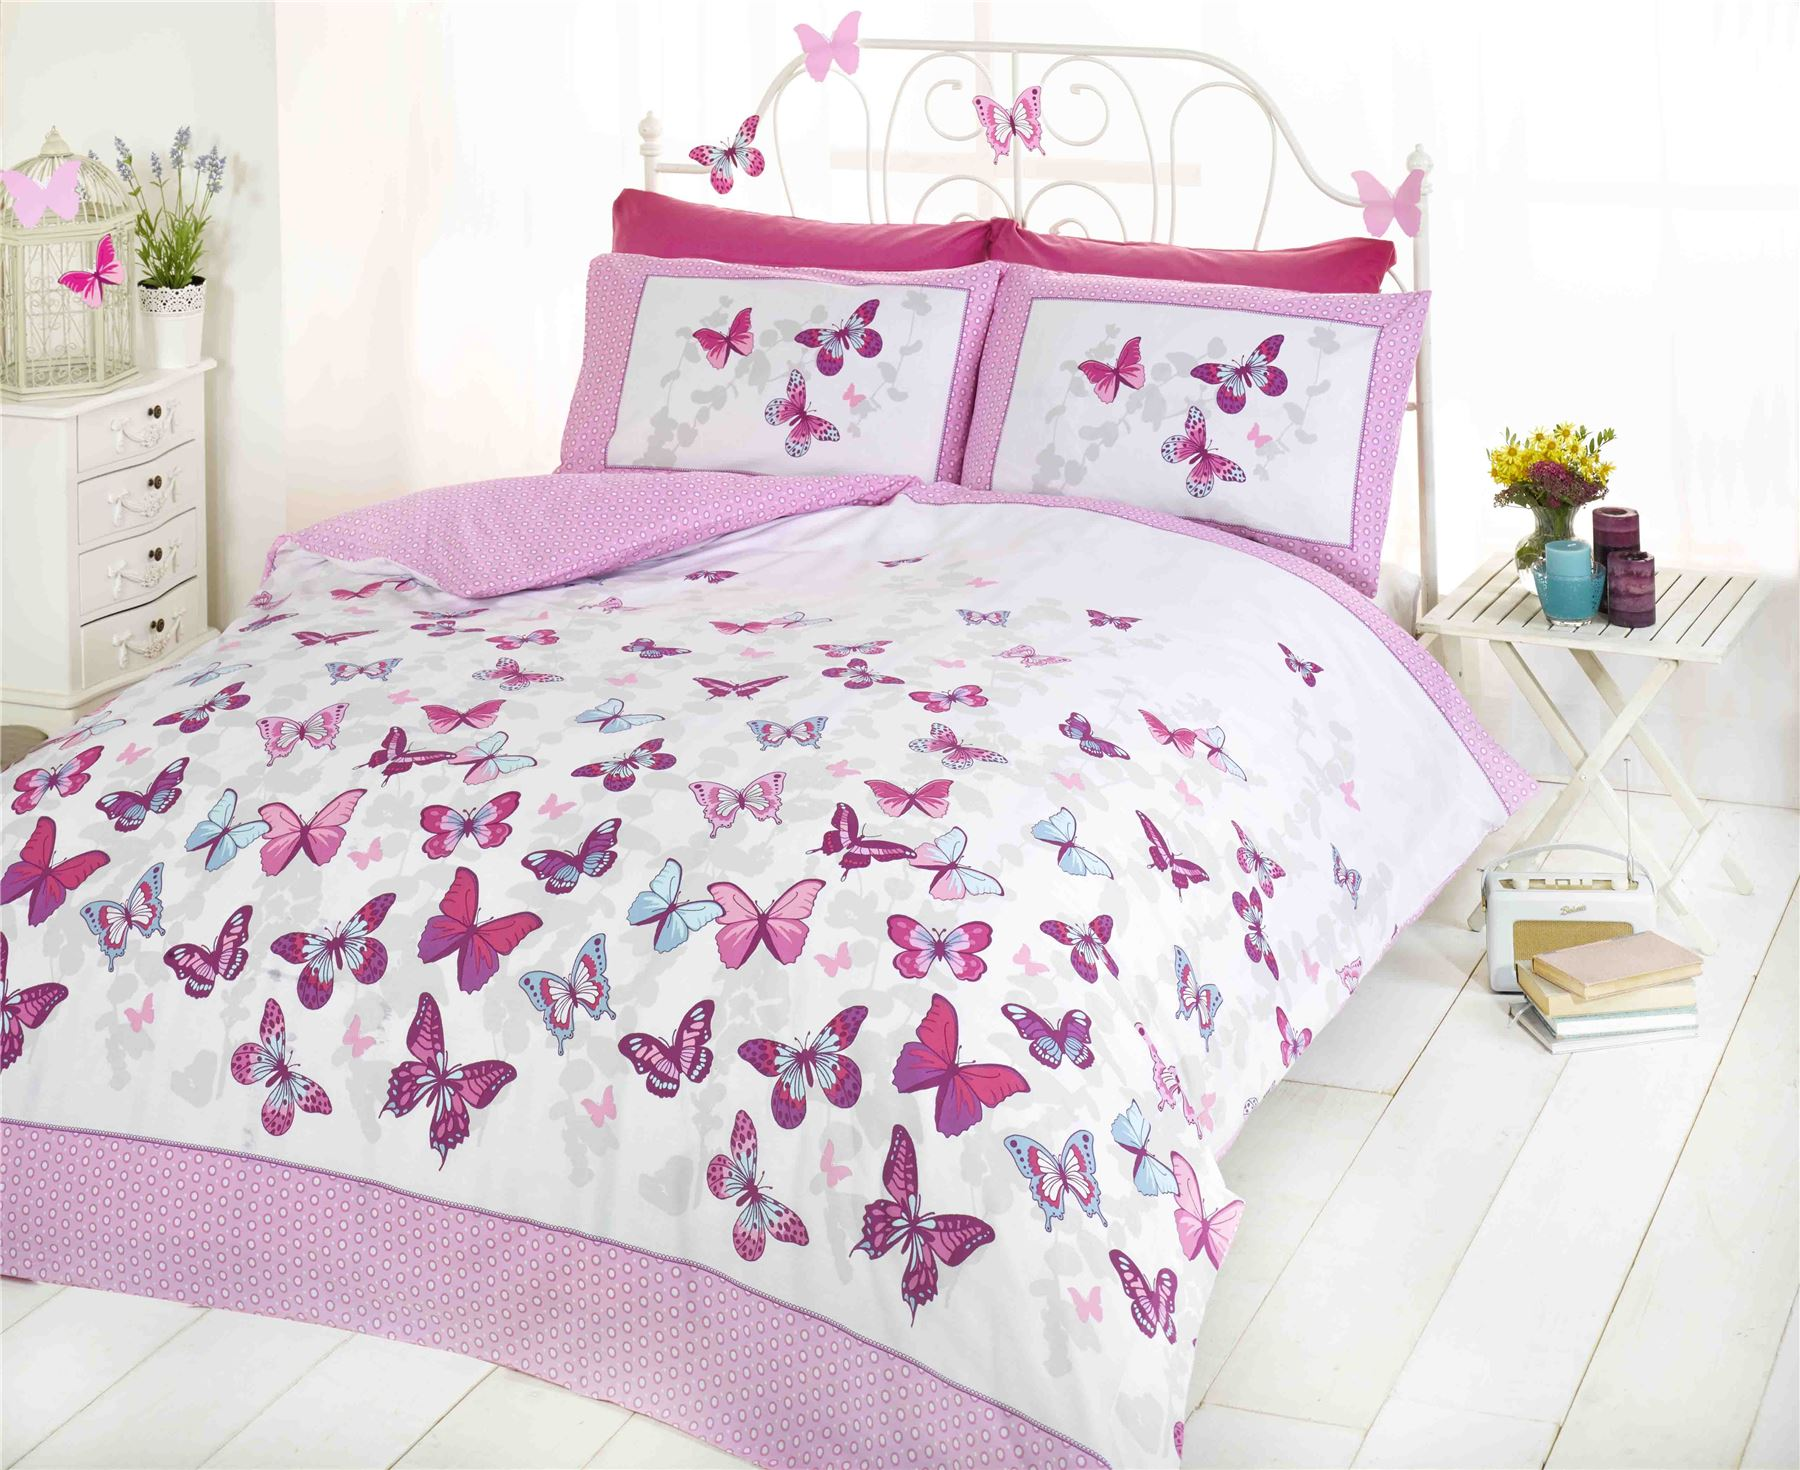 flutter butterfly butterflies pink girls childrens bedding quilt set duvet cover ebay. Black Bedroom Furniture Sets. Home Design Ideas